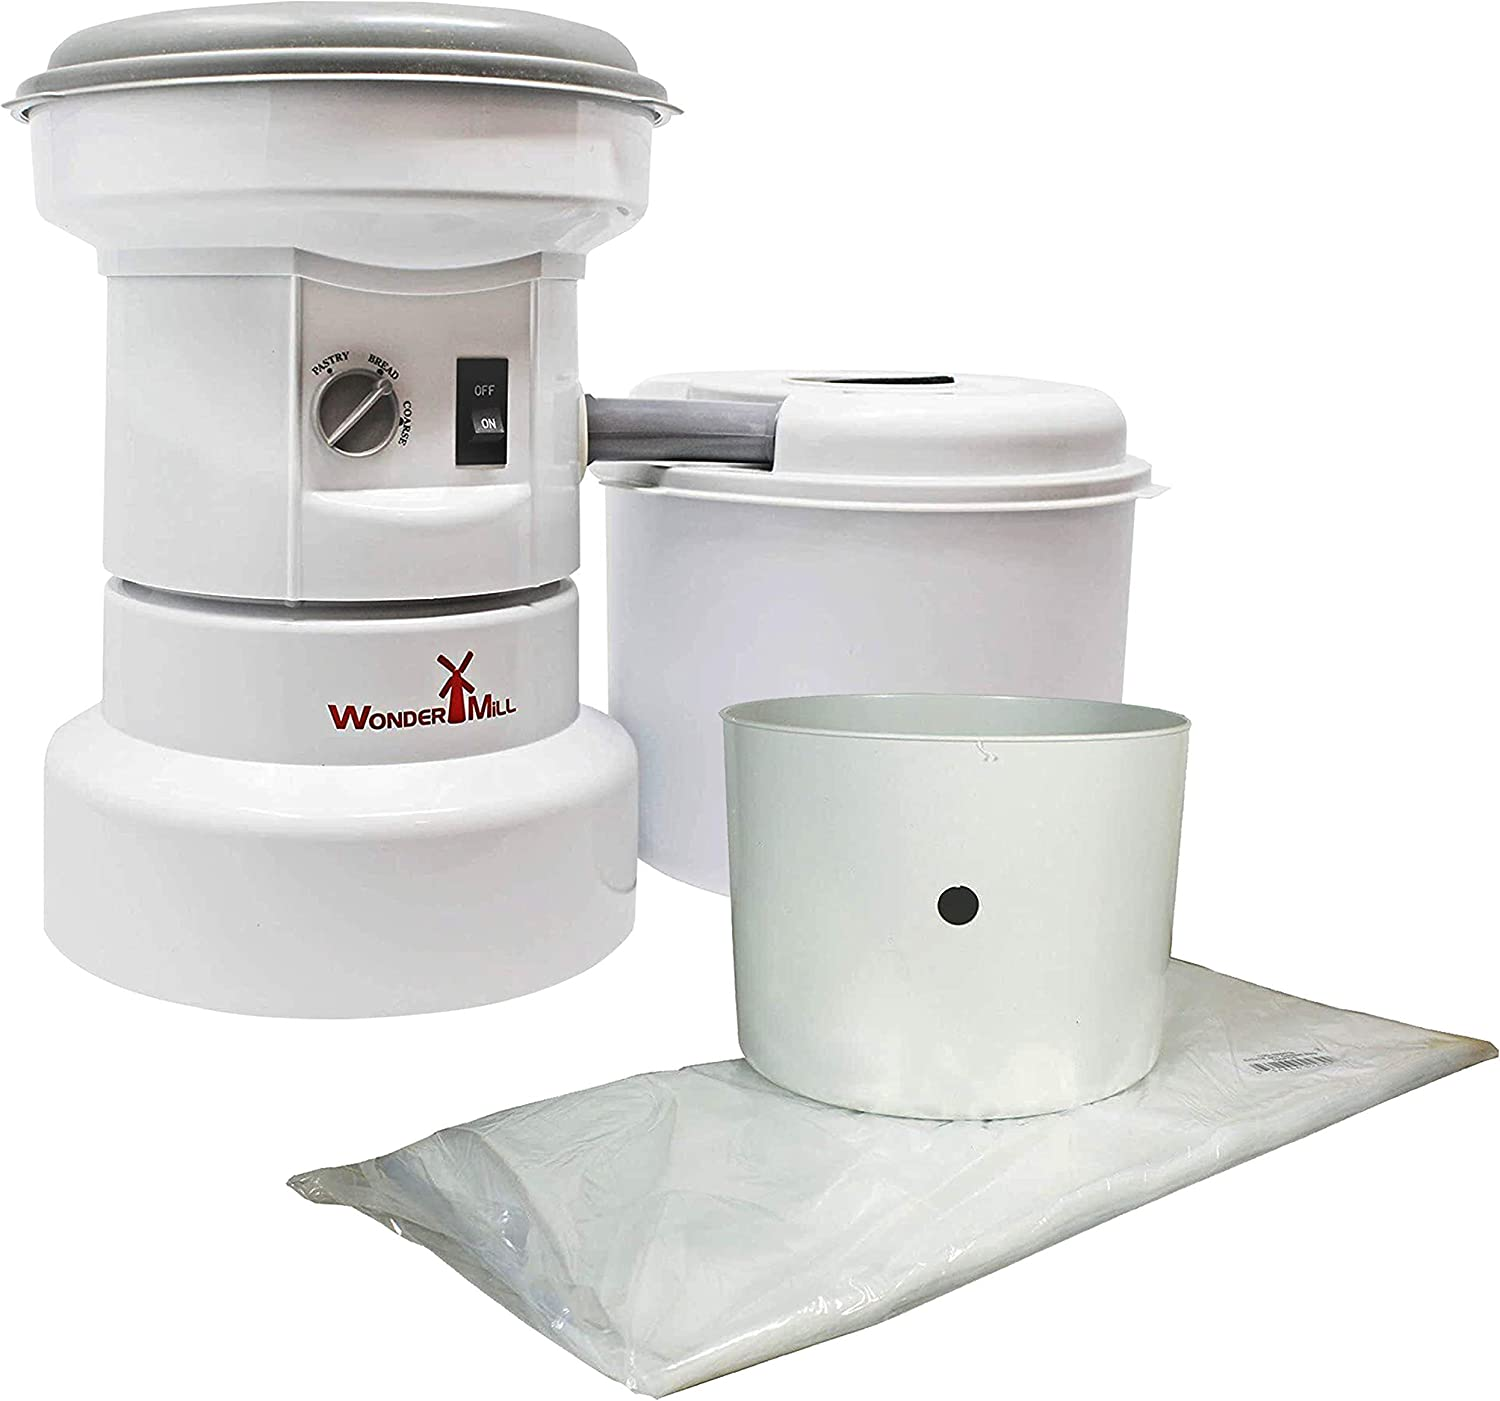 WonderMill - Bundle - Powerful Electric Grain Mill Grinder for Healthy Grains and Gluten-Free Flours with WonderMill Flour Bagger